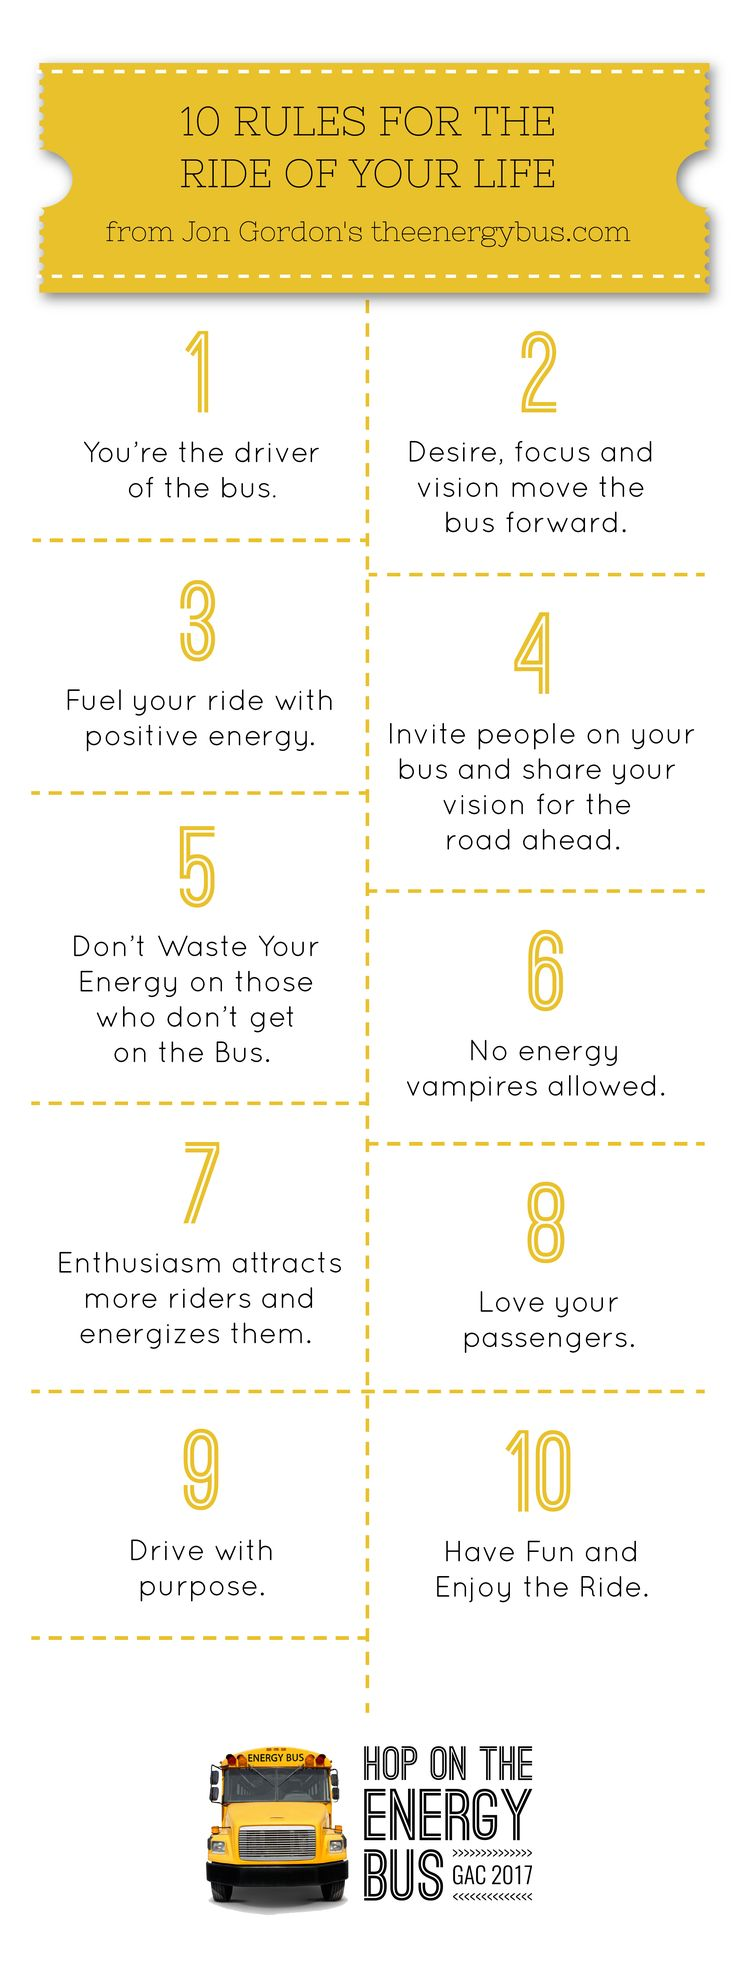 10 Rules for the Ride of Your Life - The Energy Bus!